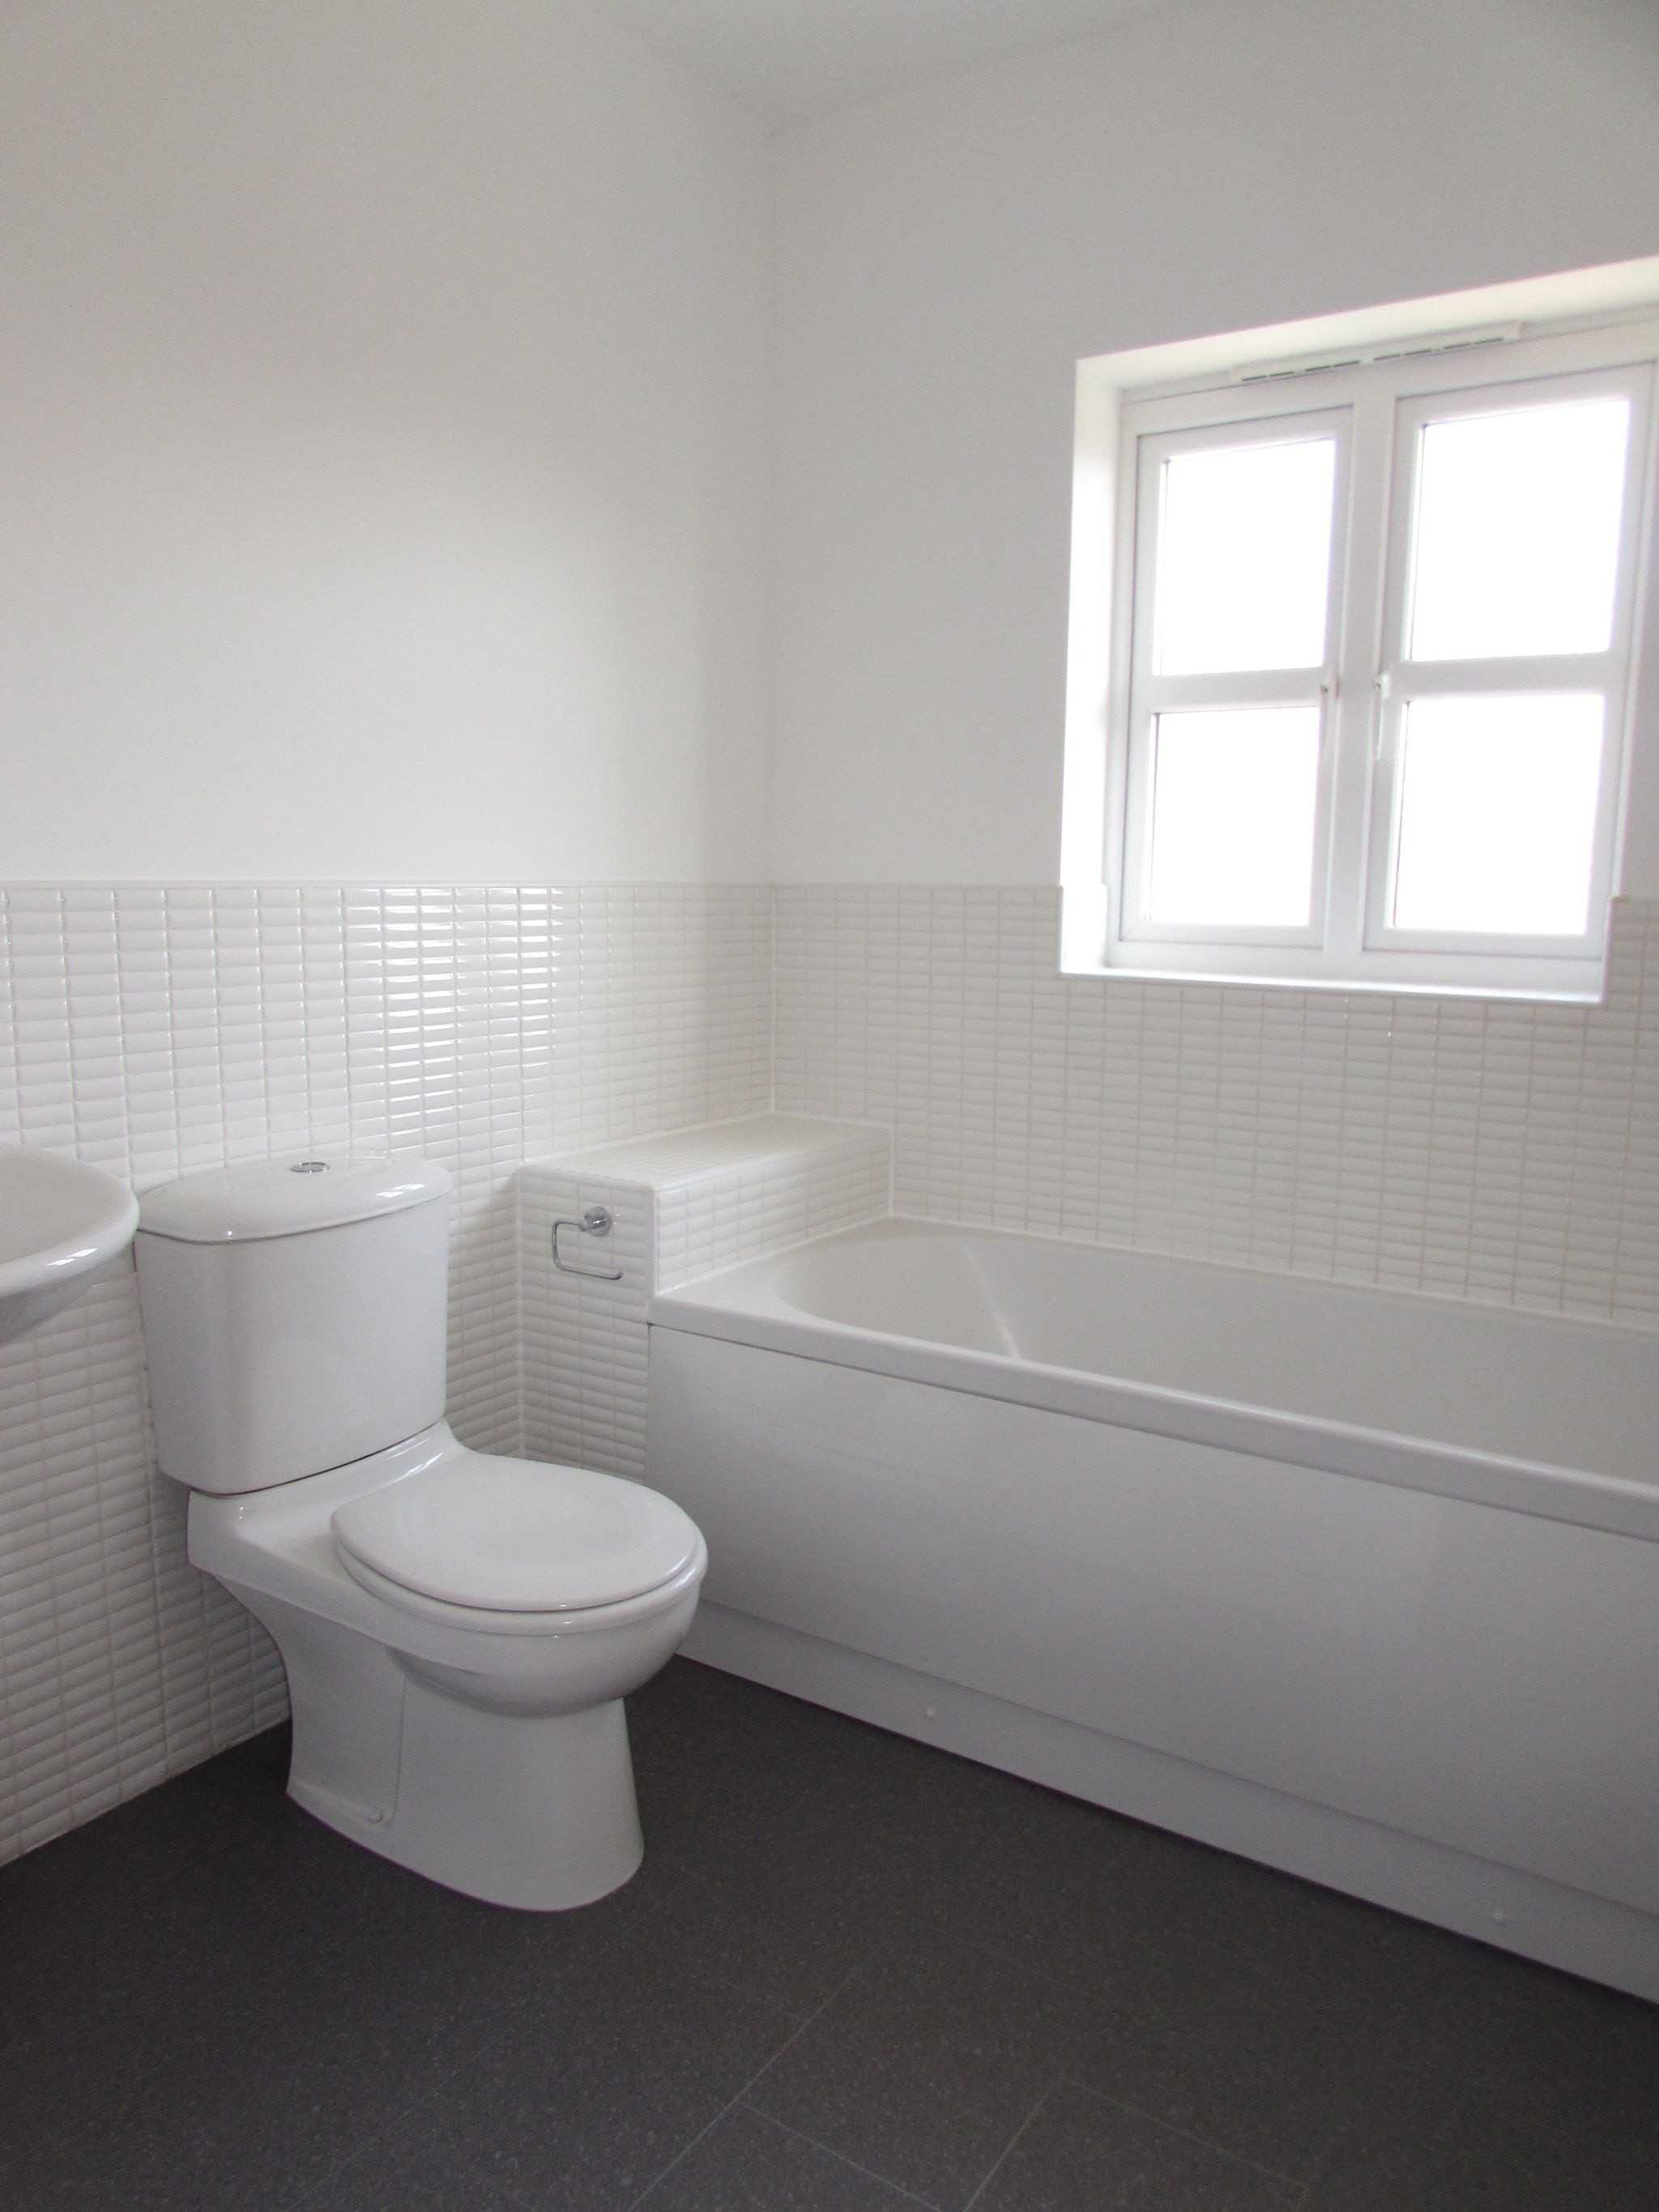 3 Bedroom Town House To Rent - FAMILY BATHROOM